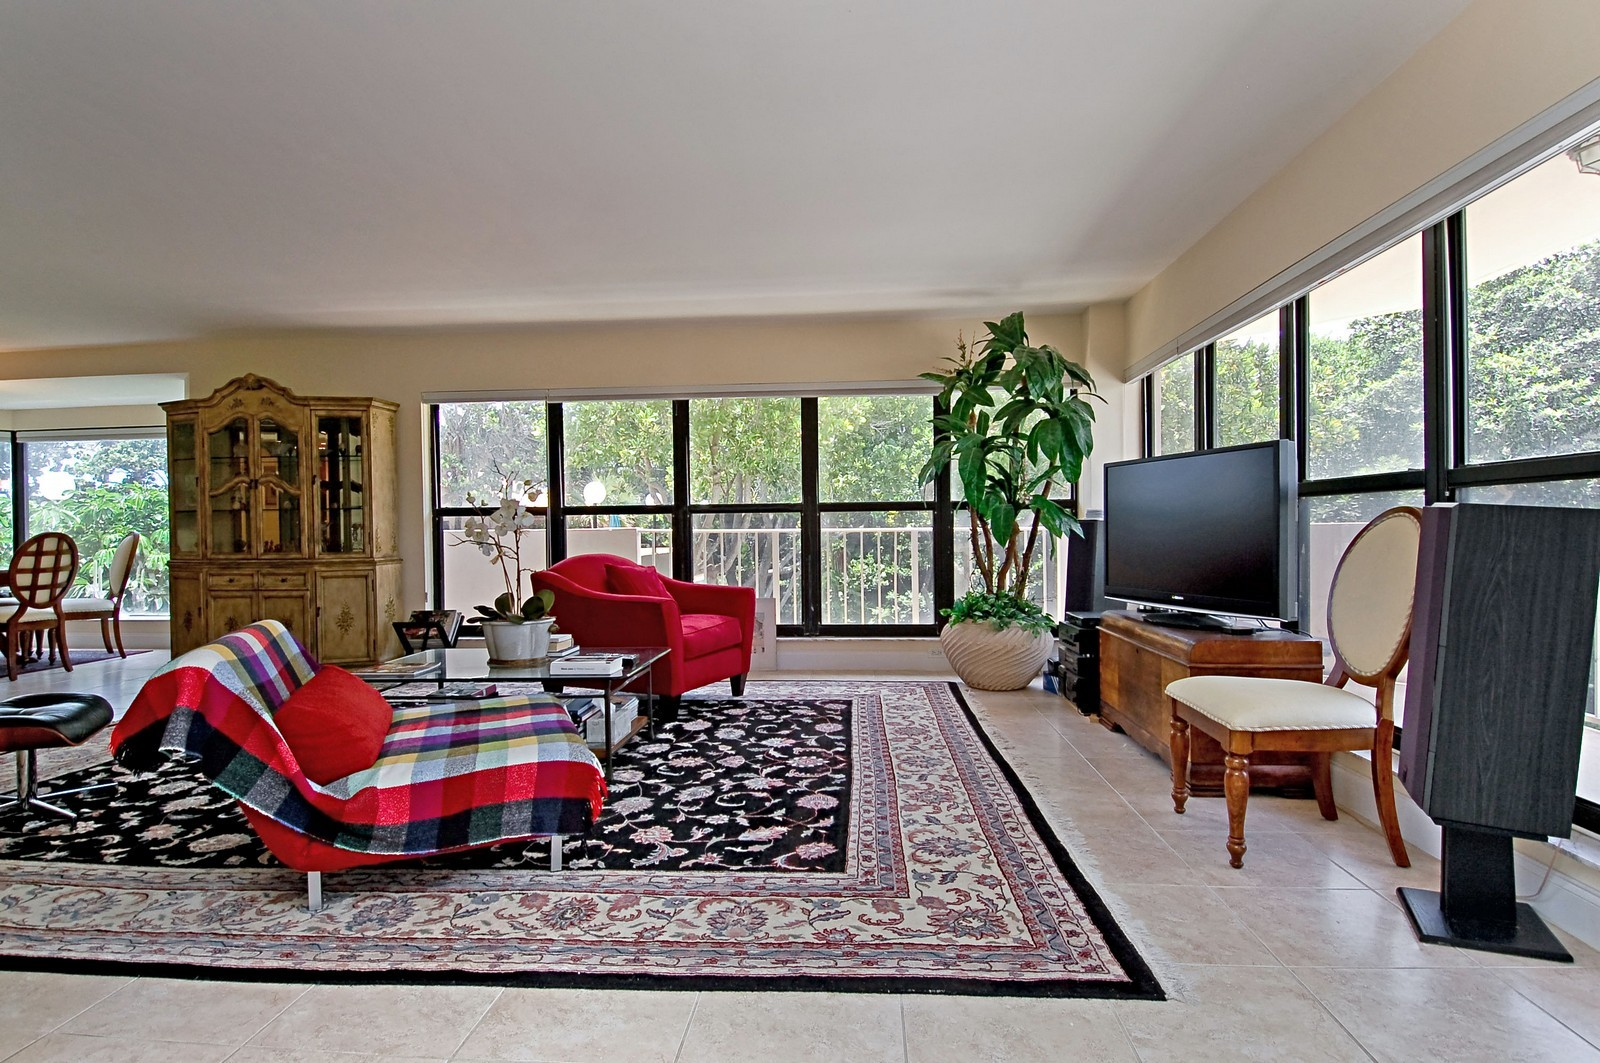 Real Estate Photography - 4605 S Ocean Blvd, Unit 3B, Highland Beach, FL, 33487 - Living Room